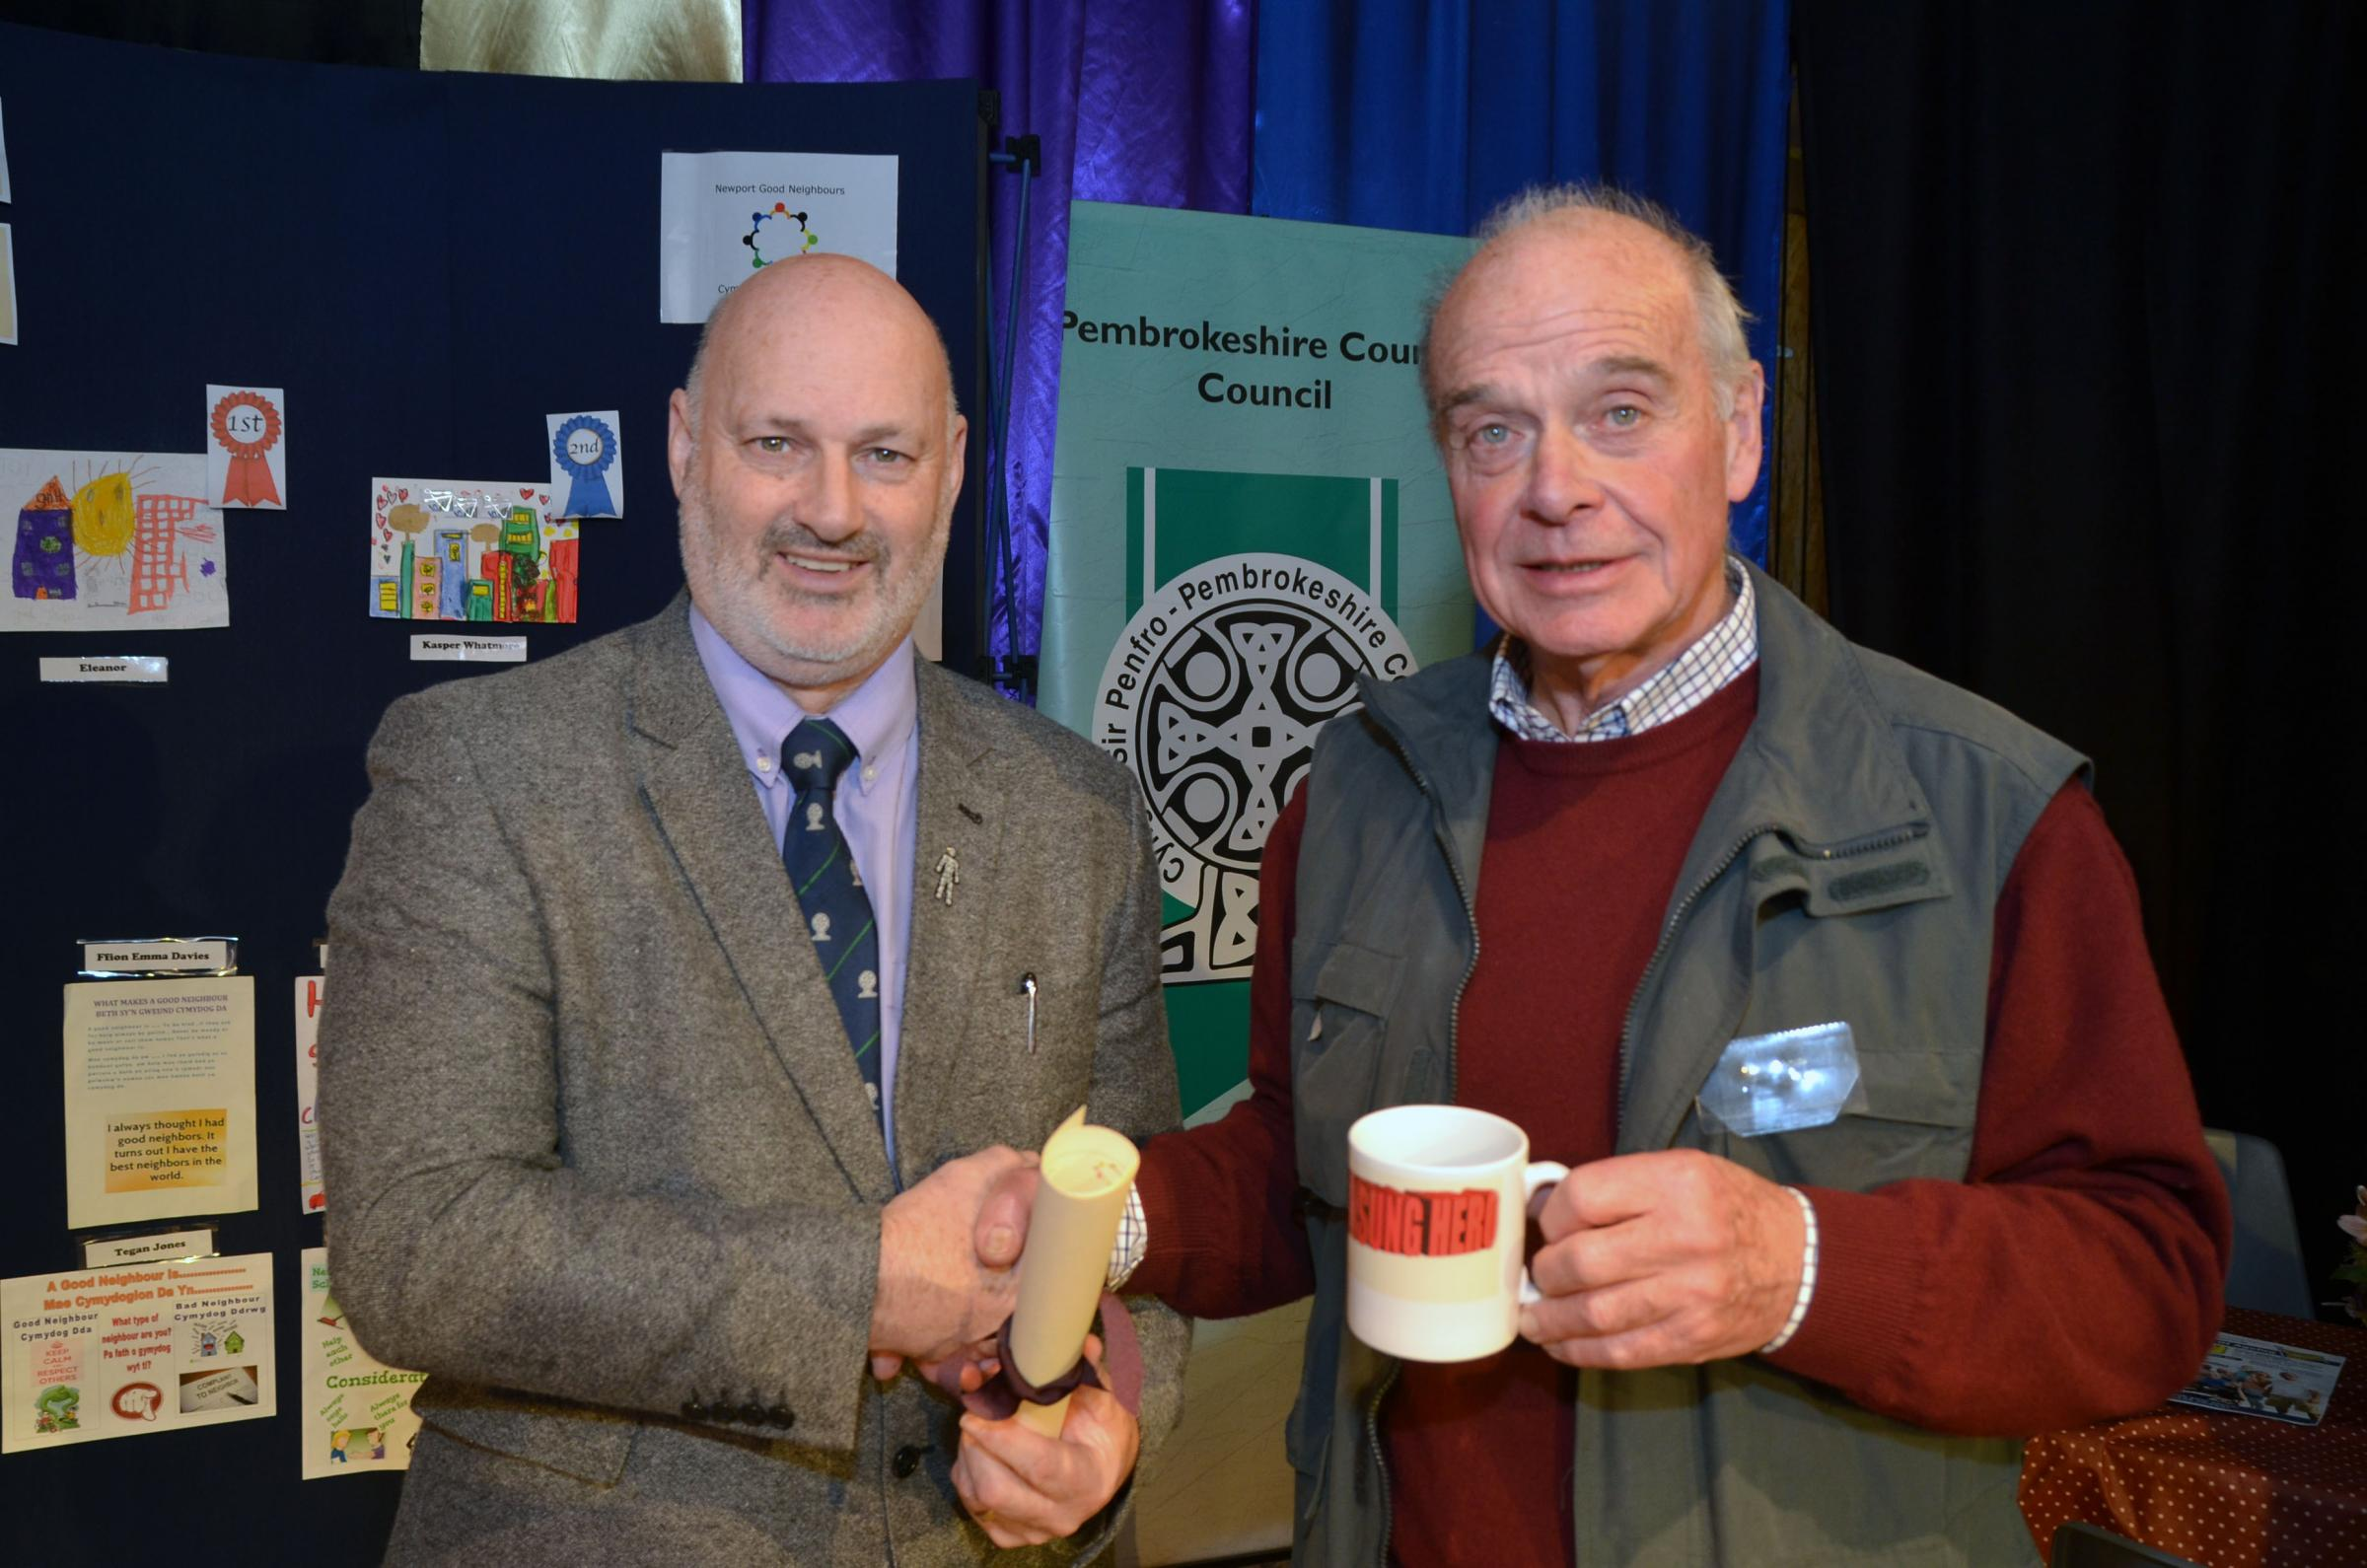 Reg Atkins (right) receives his award from Councillor Mike James.